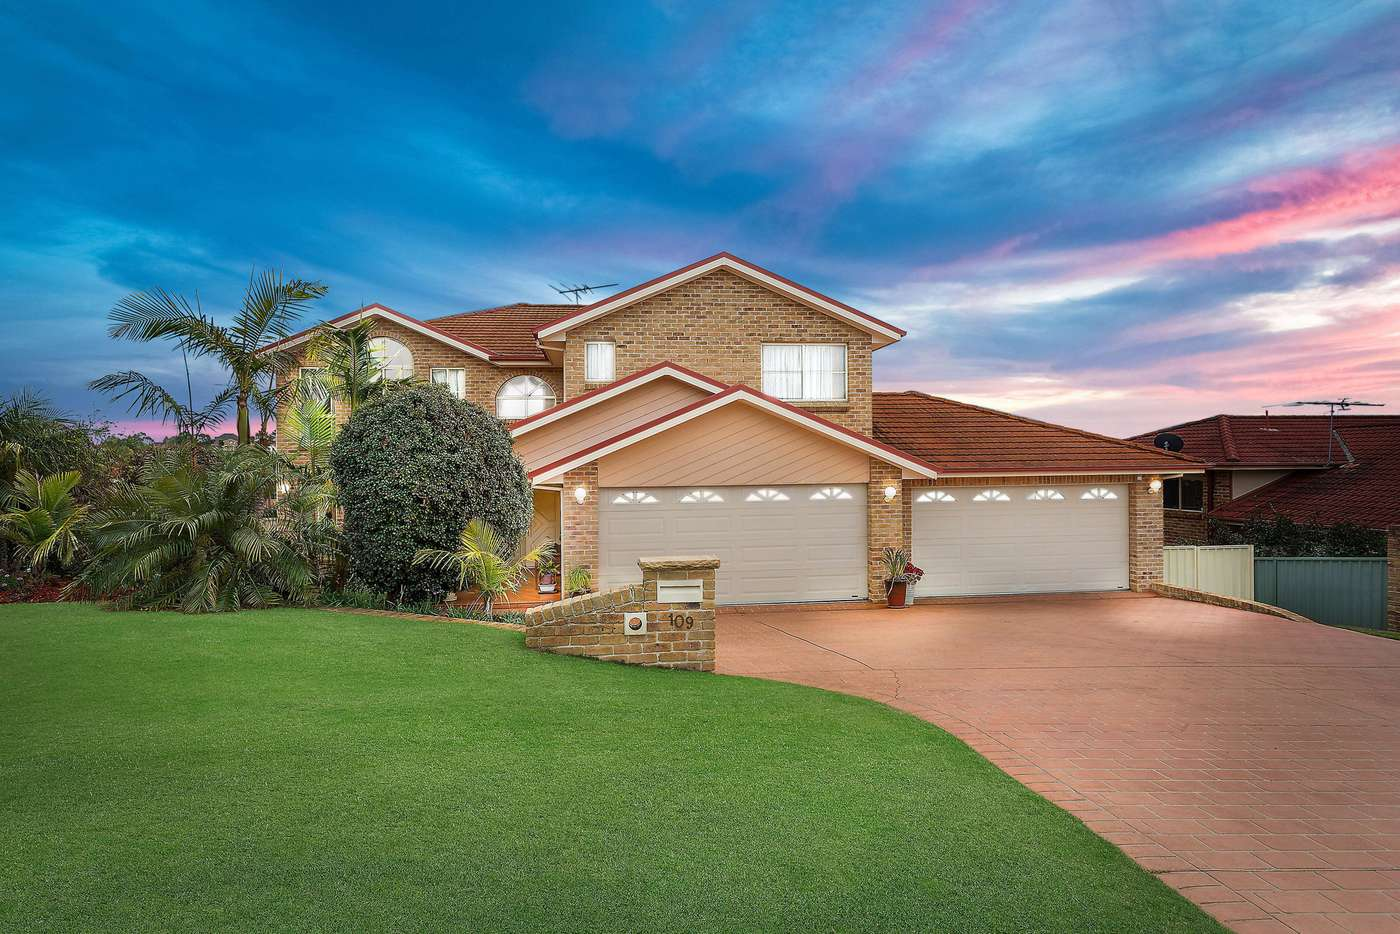 Main view of Homely house listing, 109 Heritage Way, Glen Alpine NSW 2560